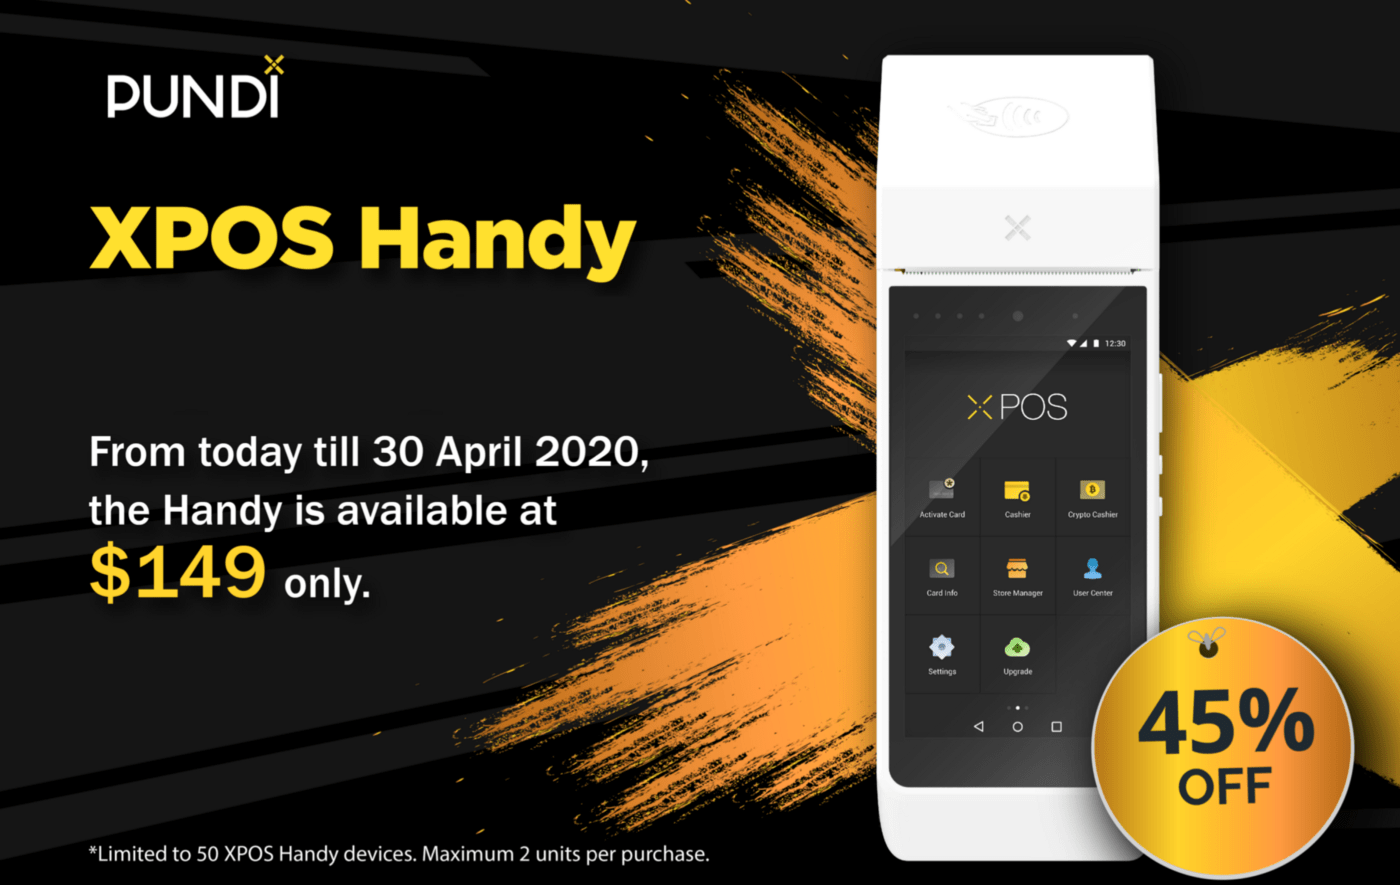 XPOS handy - Pundi X (NPXS) to Give Away 50 Free XPOS Devices to Merchants in COVID19 Relief Program